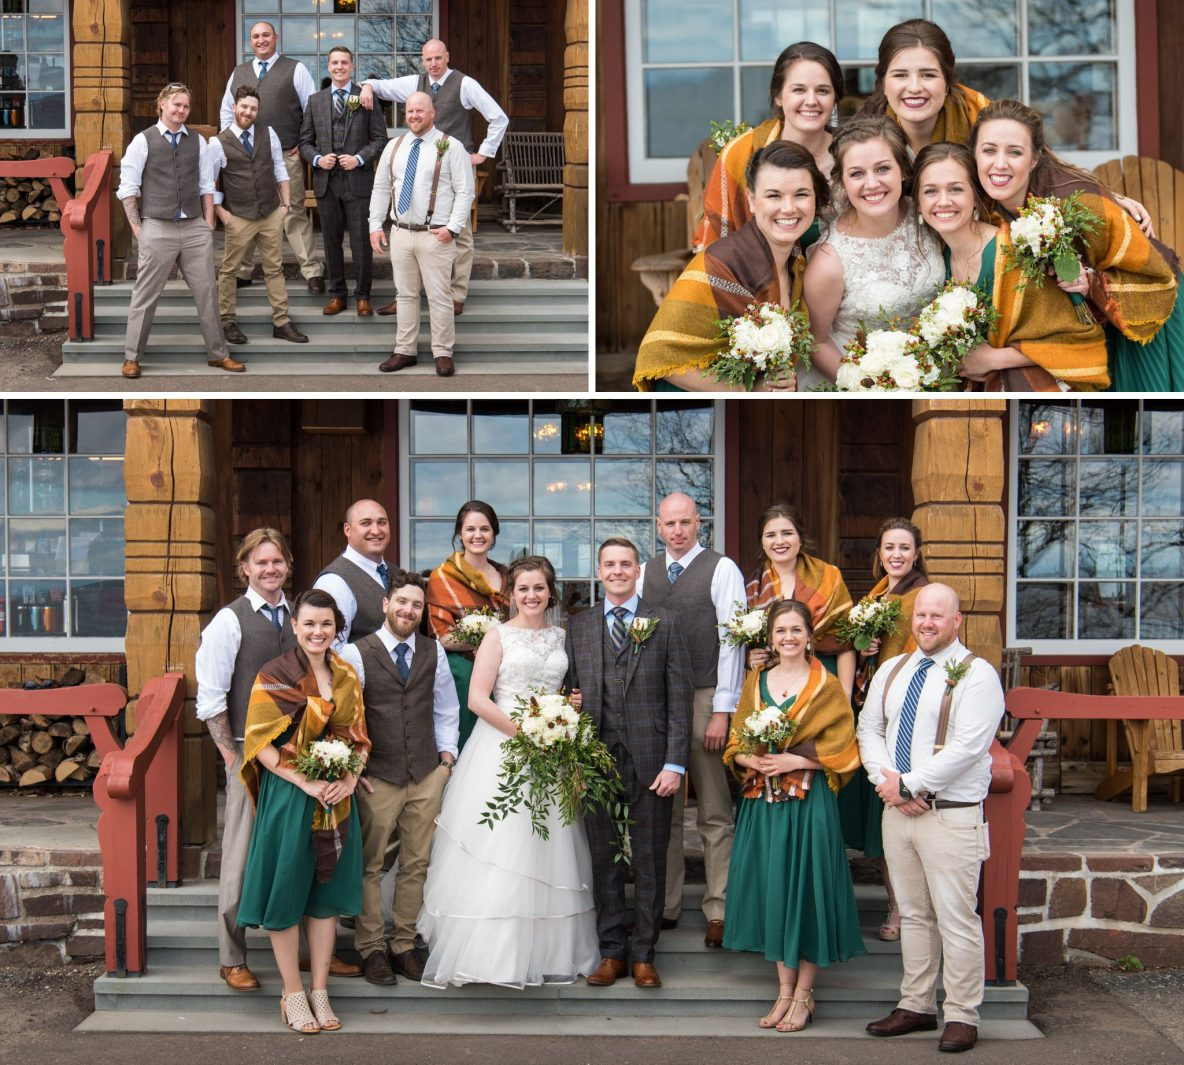 Photos of the wedding party outside.